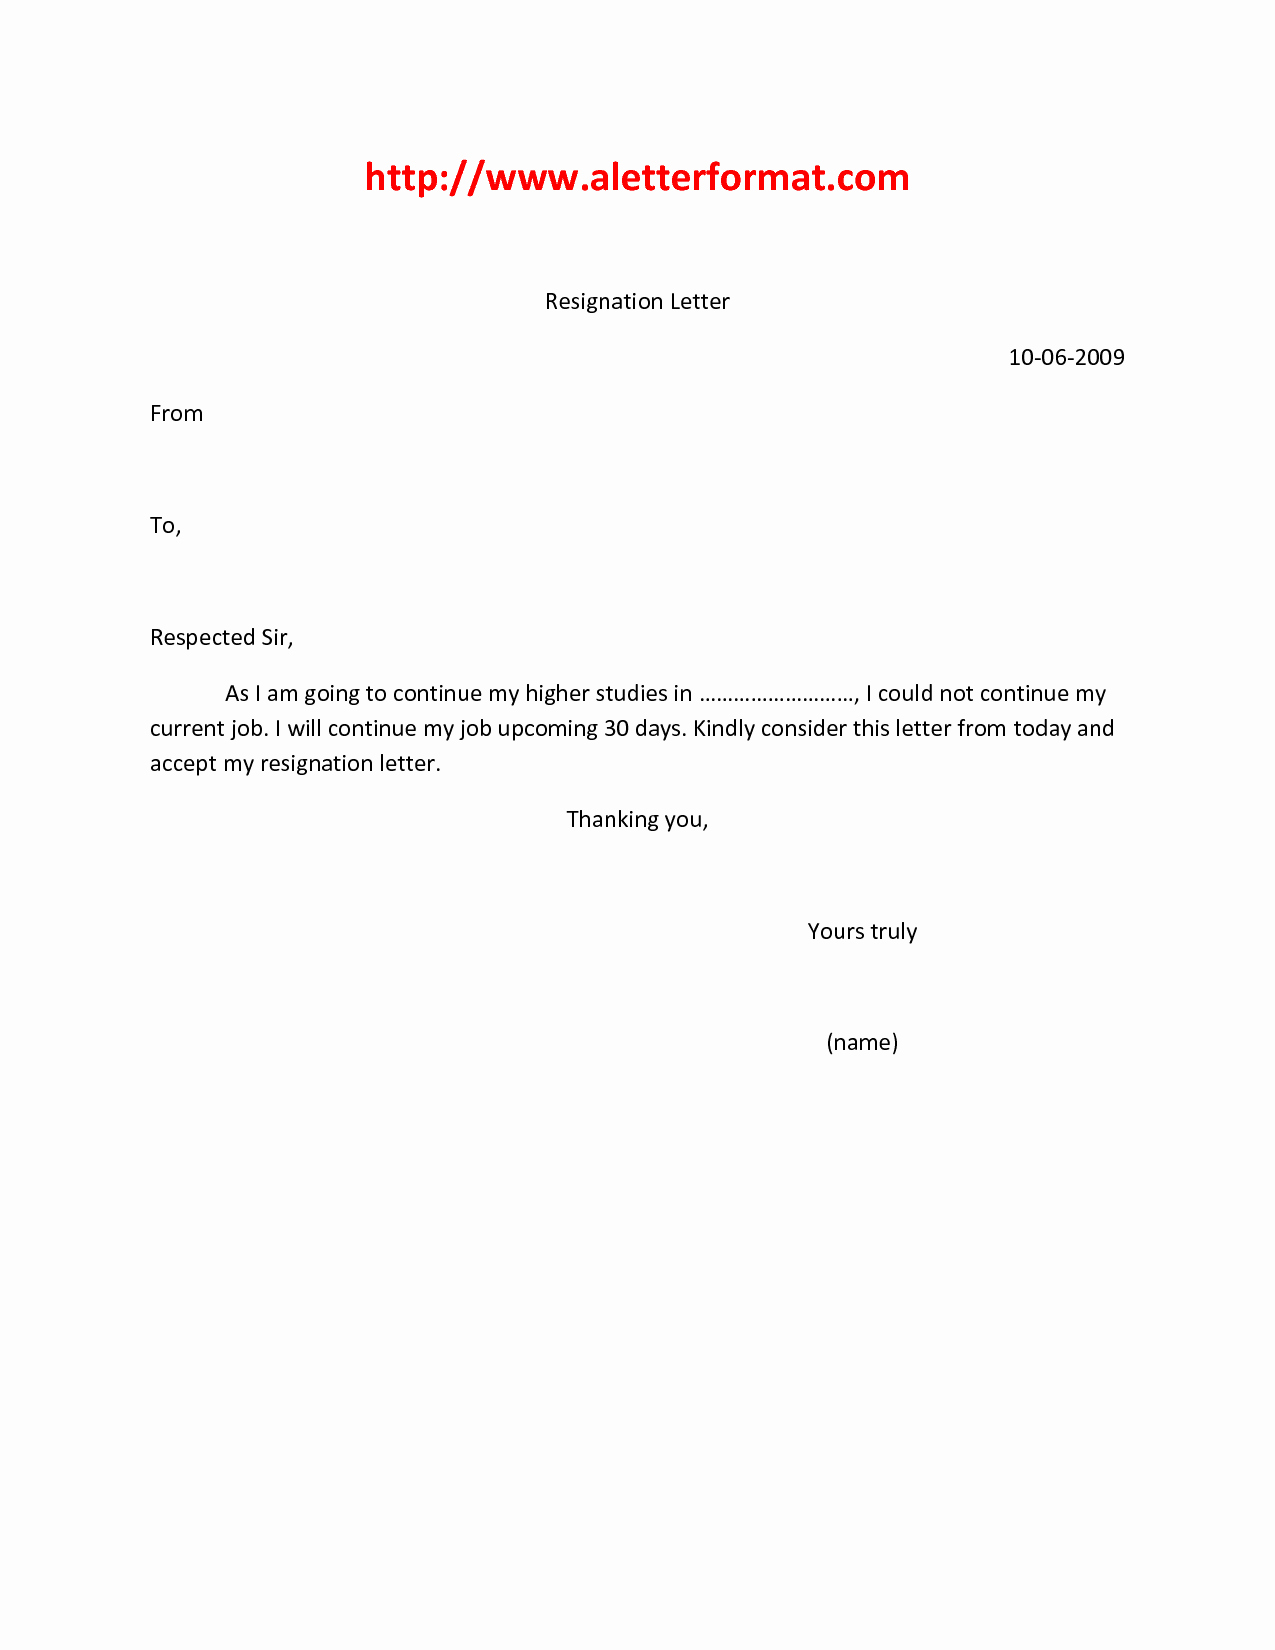 Format A Letter In Word Inspirational 5 Resignation Letter for Marriage Reason